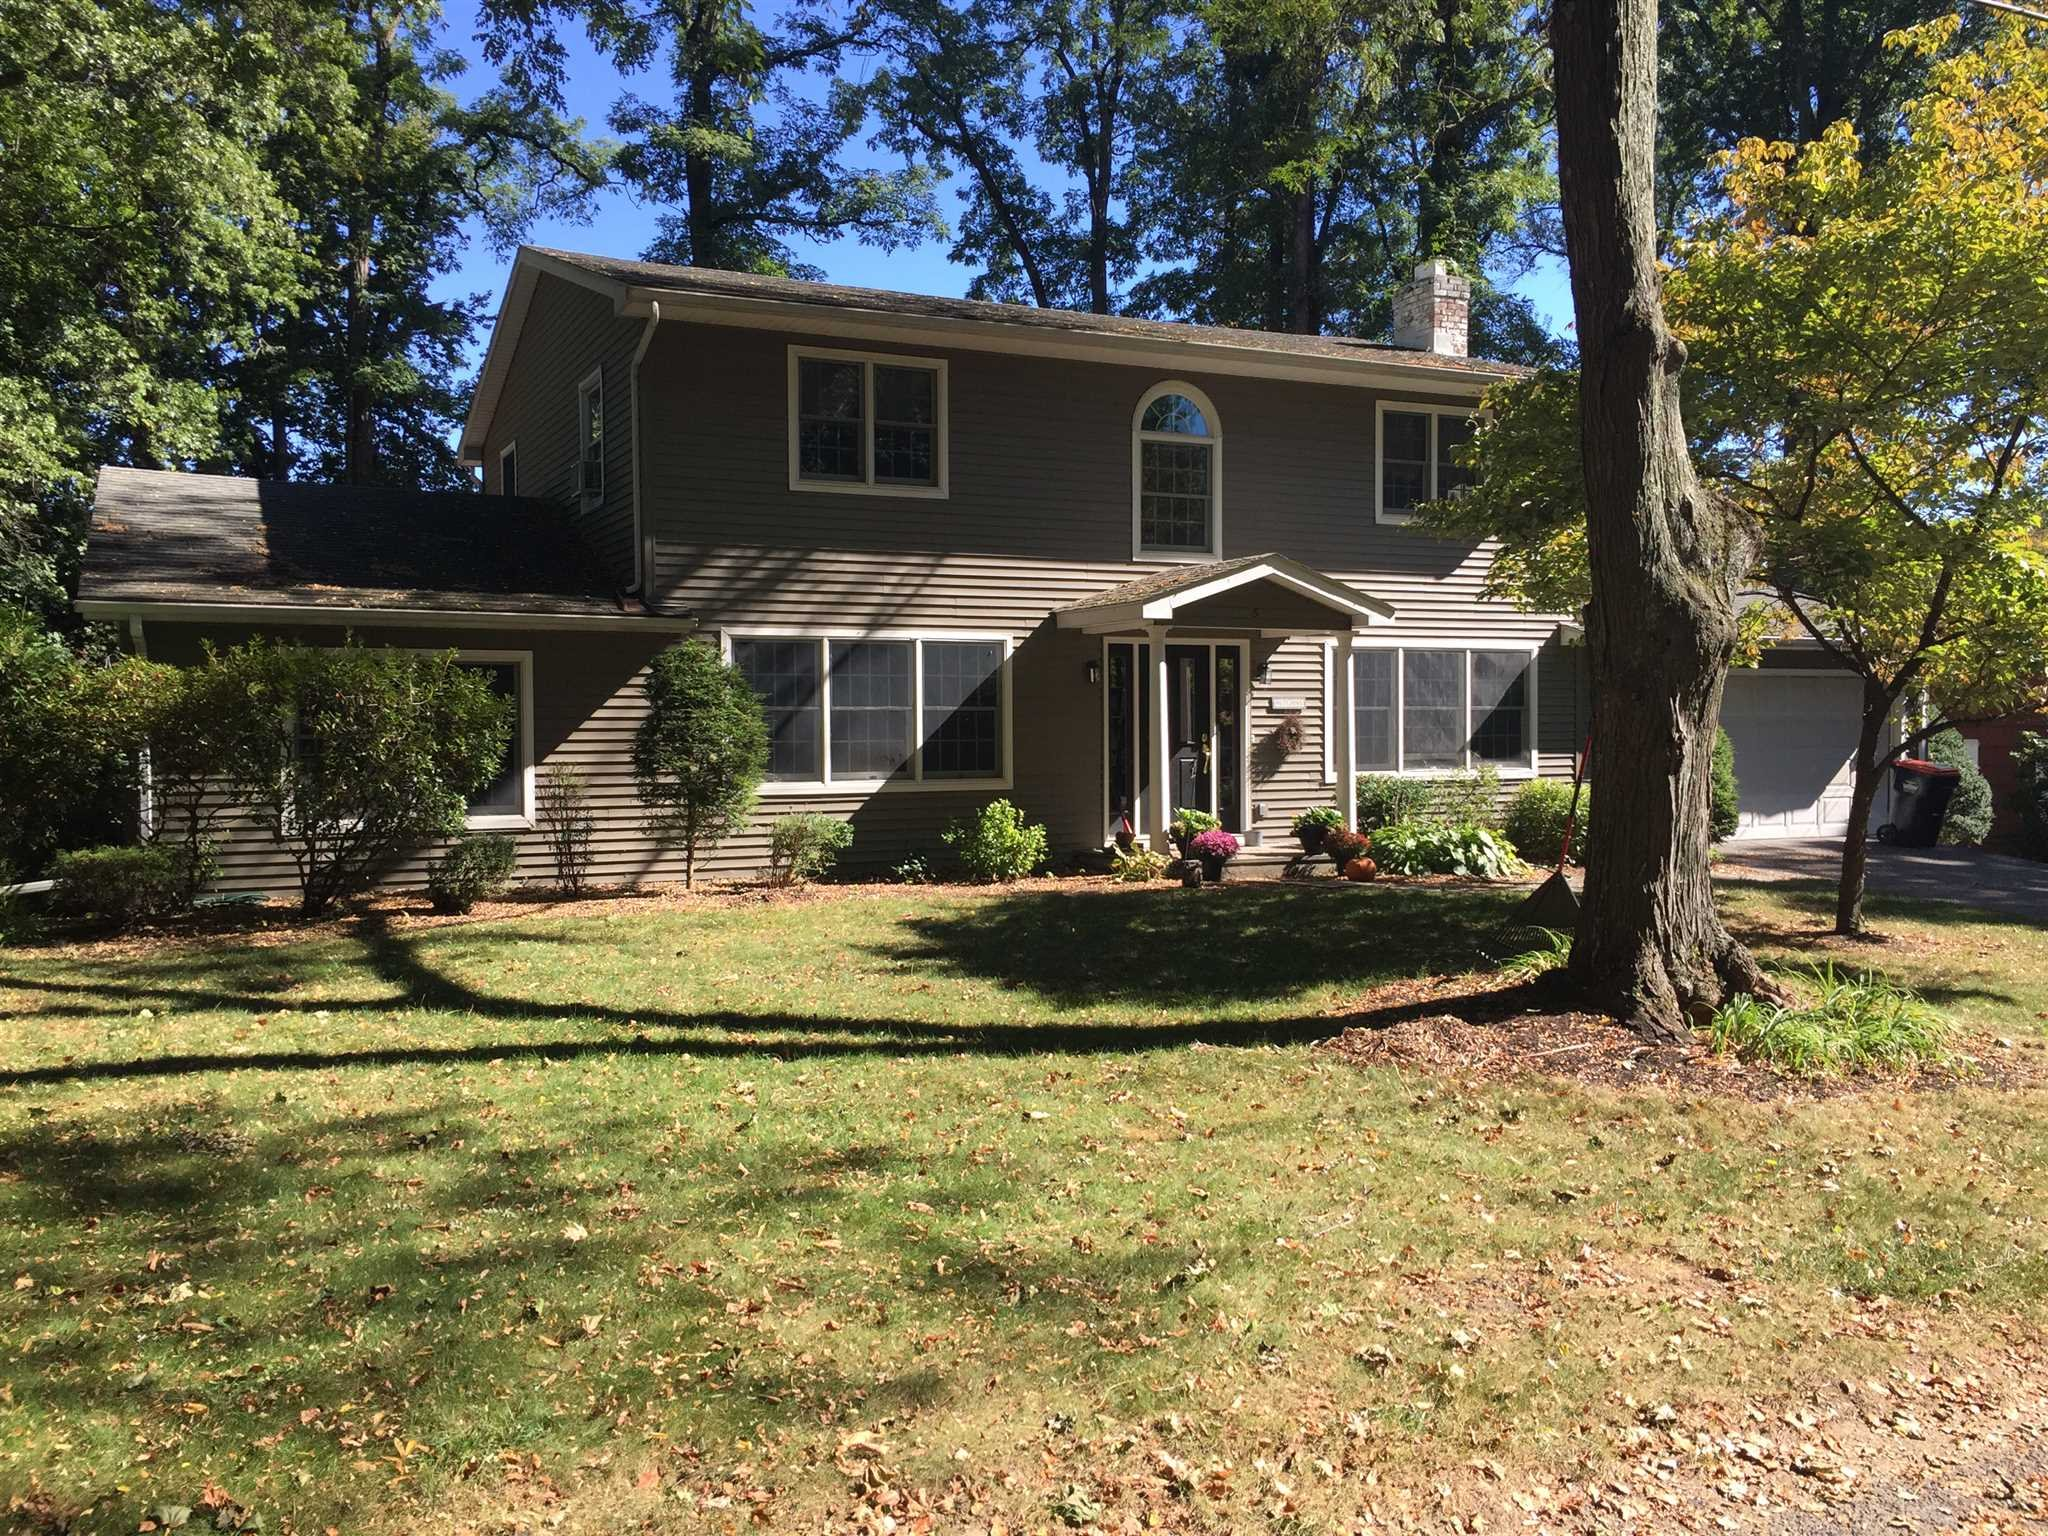 Single Family Home for Sale at 5 CROWELL 5 CROWELL Rhinebeck, New York 12572 United States